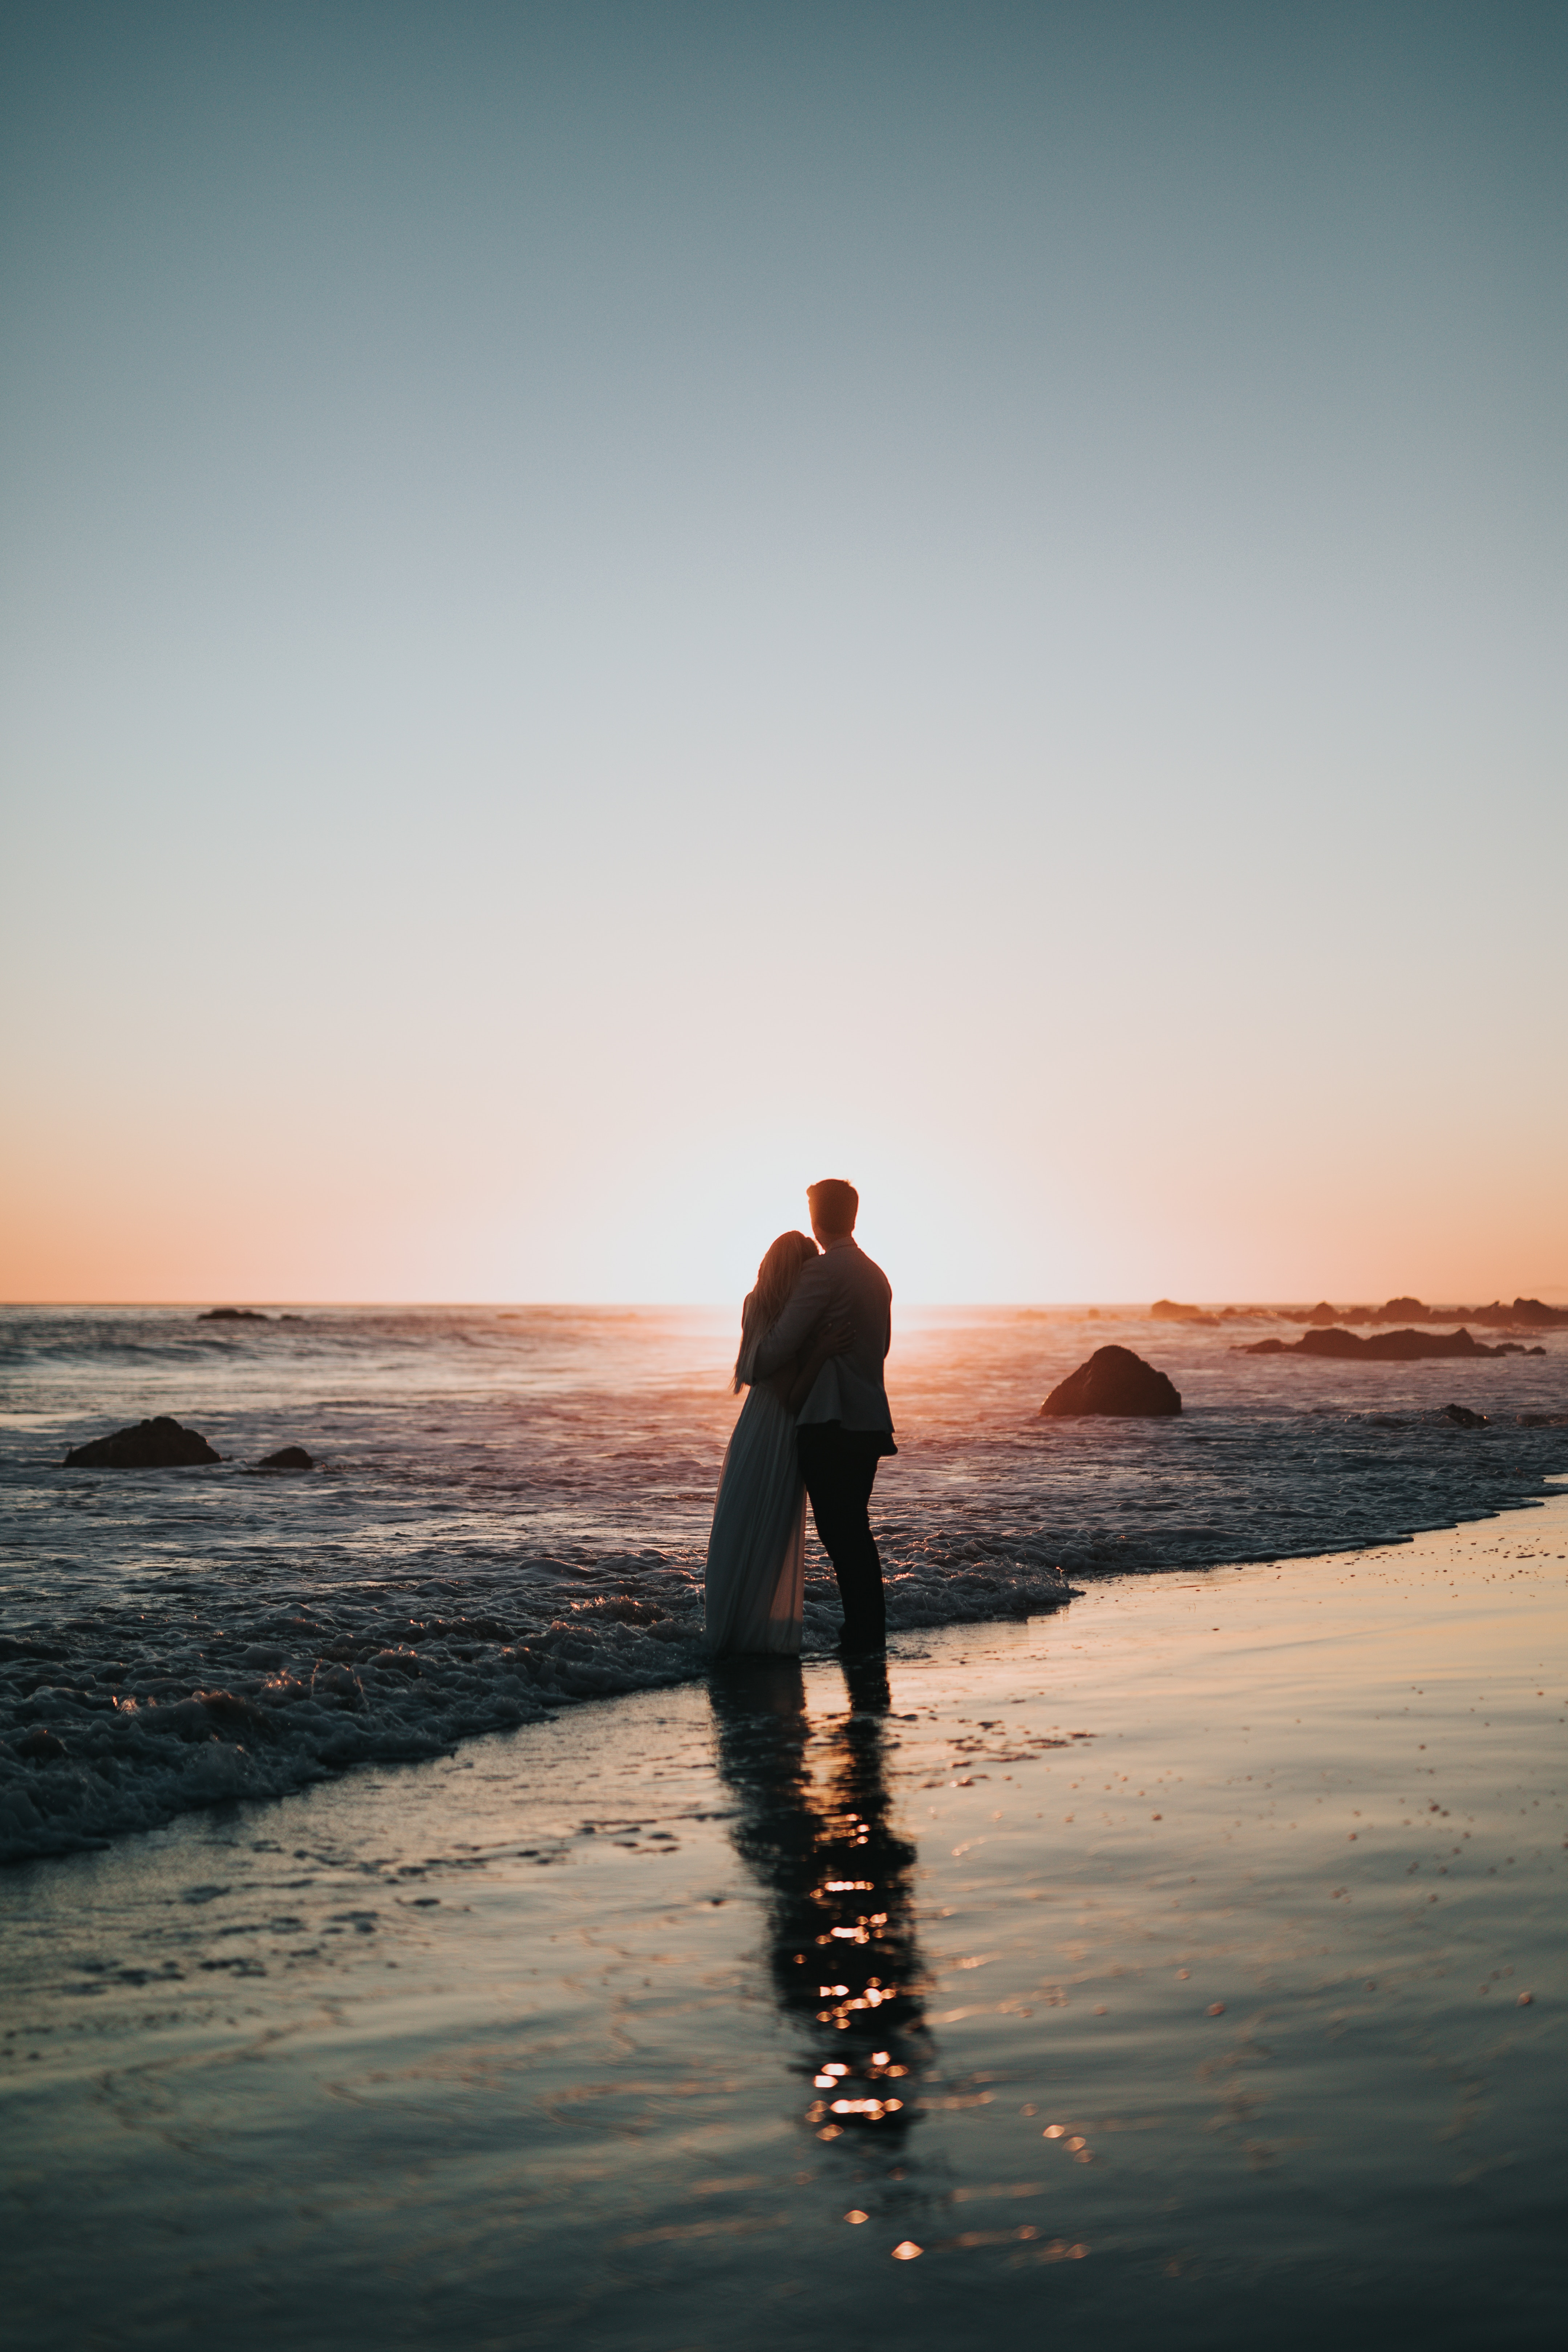 67137 download wallpaper Couple, Pair, Shore, Bank, Sunset, Embrace, Love screensavers and pictures for free